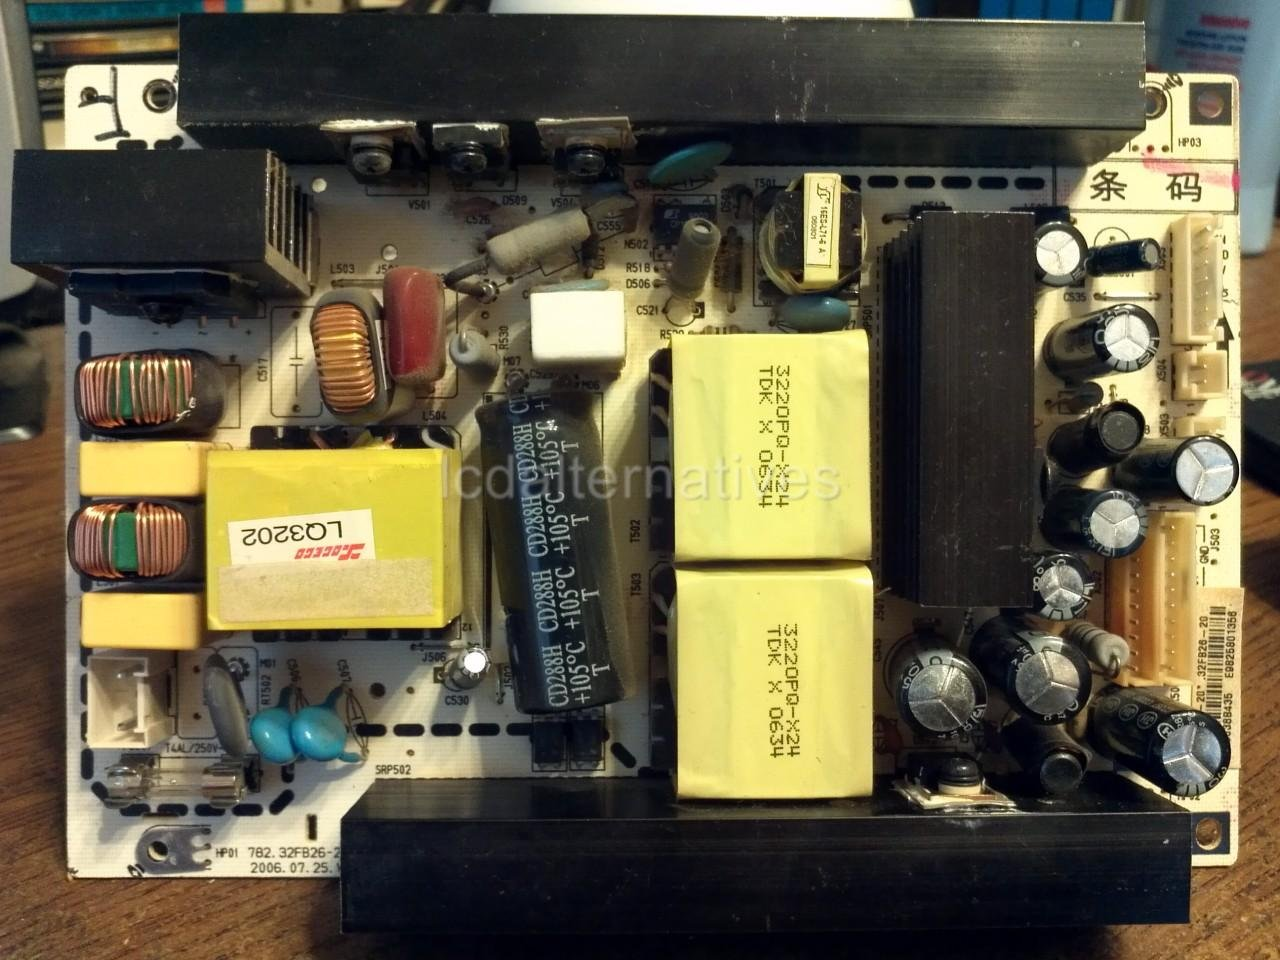 Repair Kit, Insignia NS-32LCD, LCD TV, Capacitors, Not the Entire Board